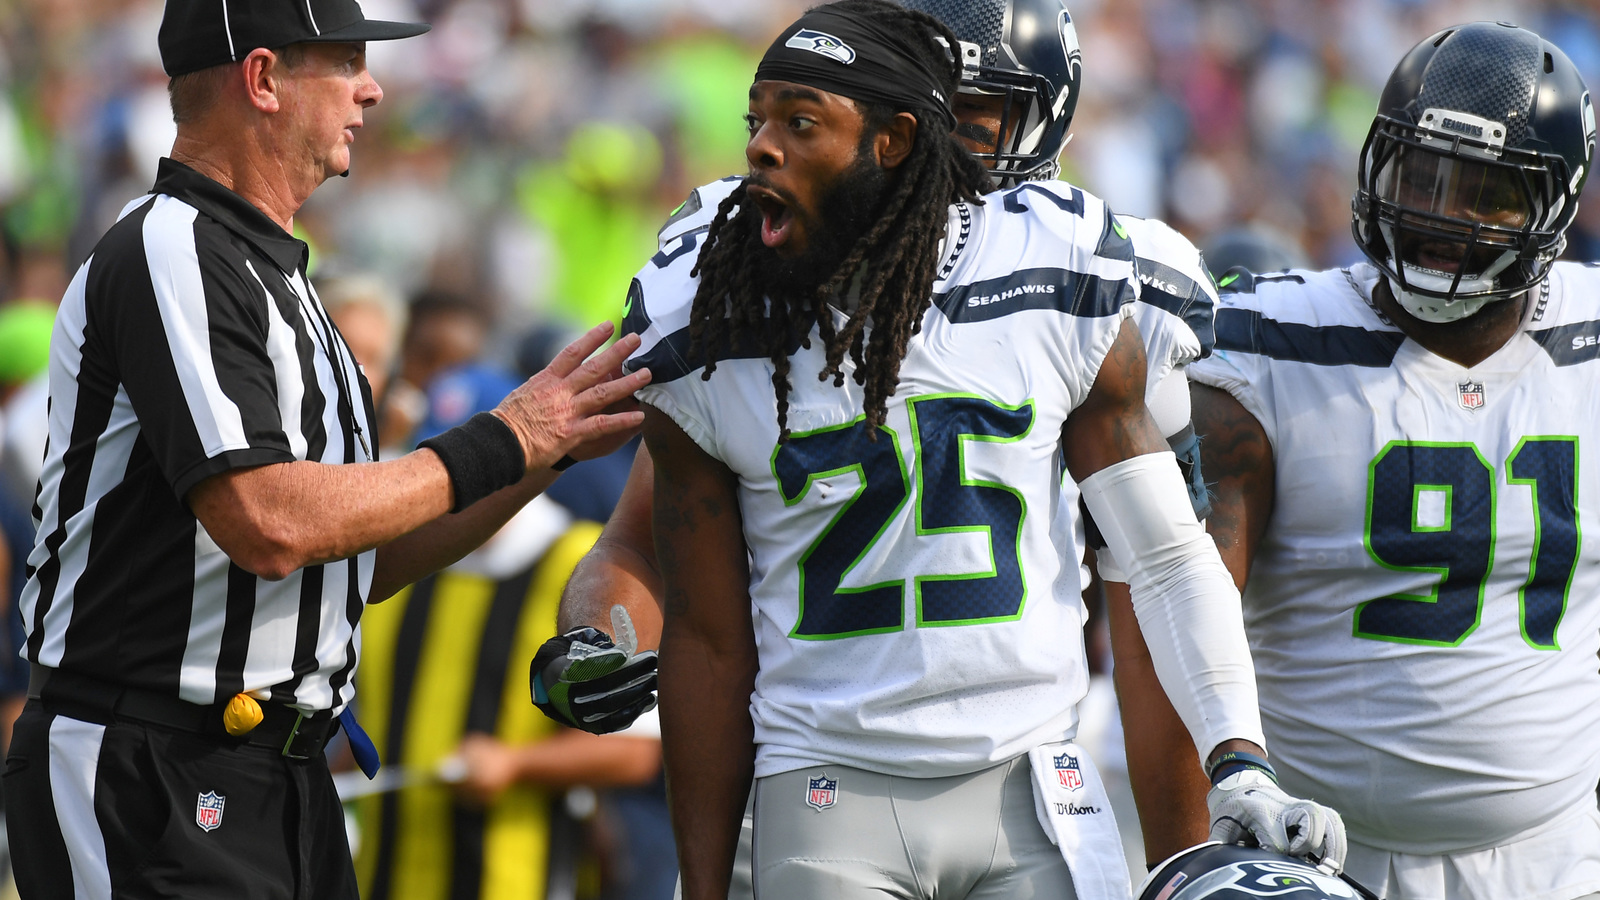 Fight breaks out after Richard Sherman lands cheap shot on Marcus